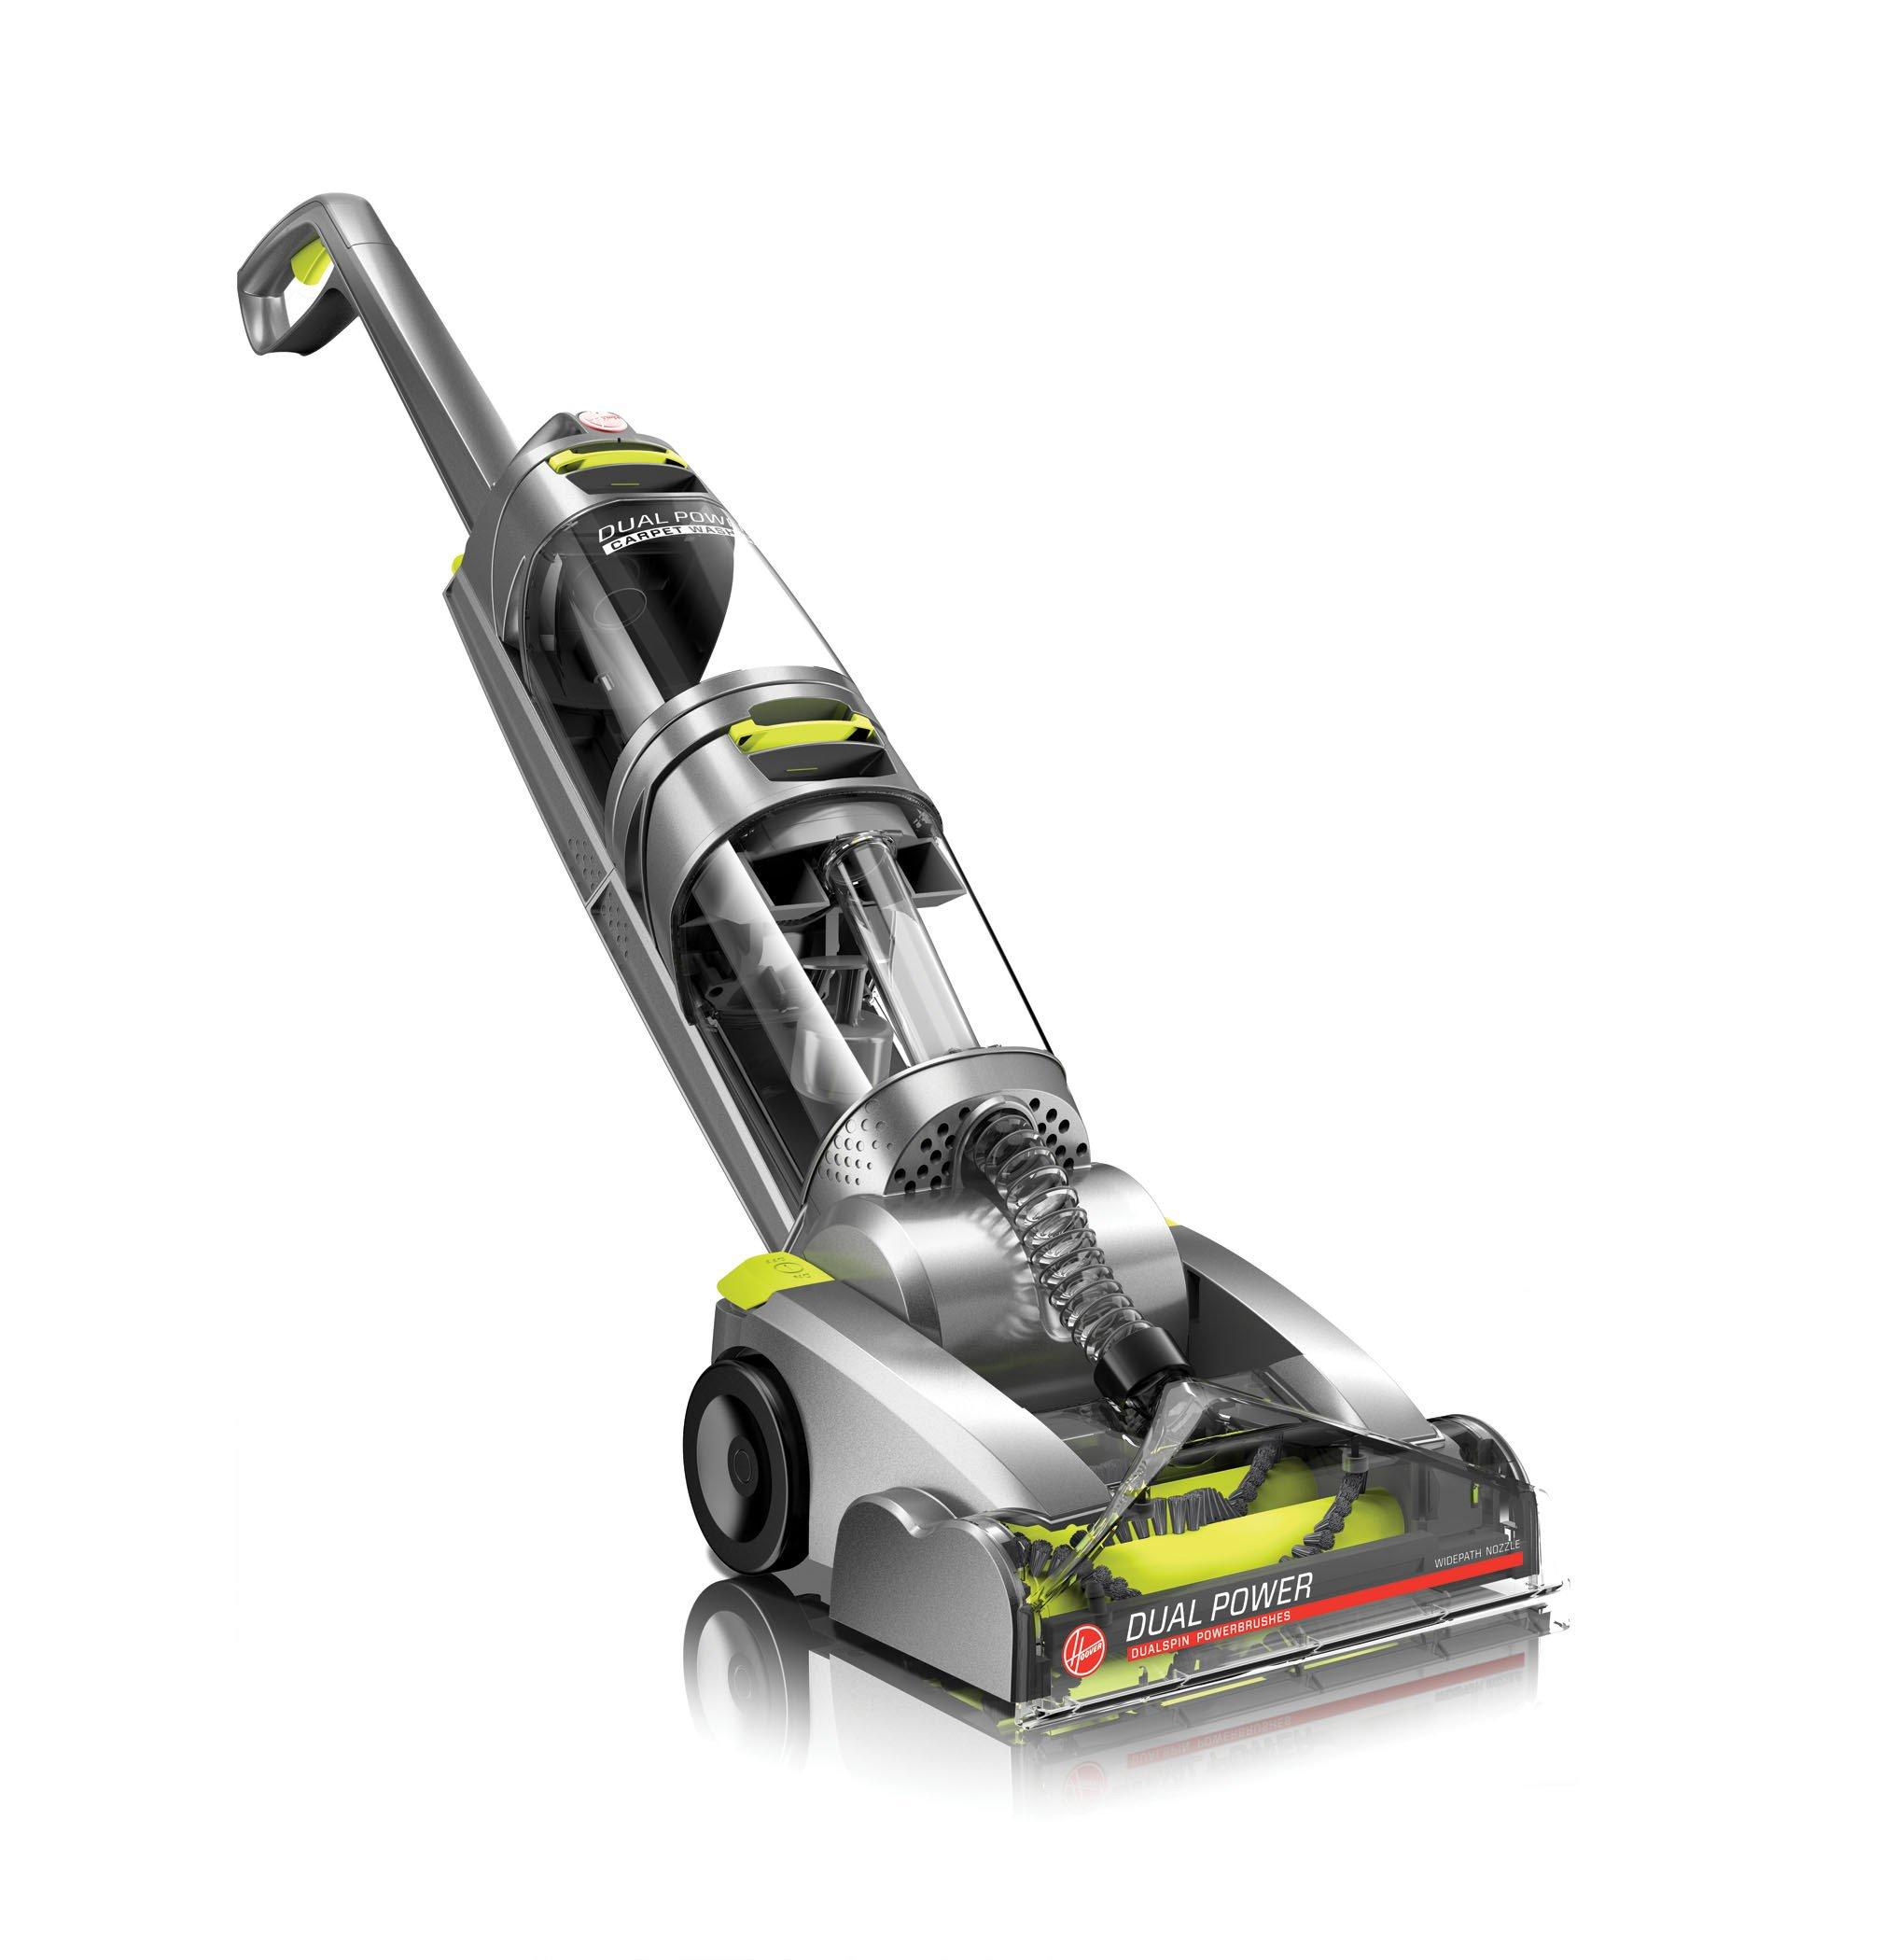 Hoover Dual Power Carpet Cleaner (Refurbished), FH50900RM